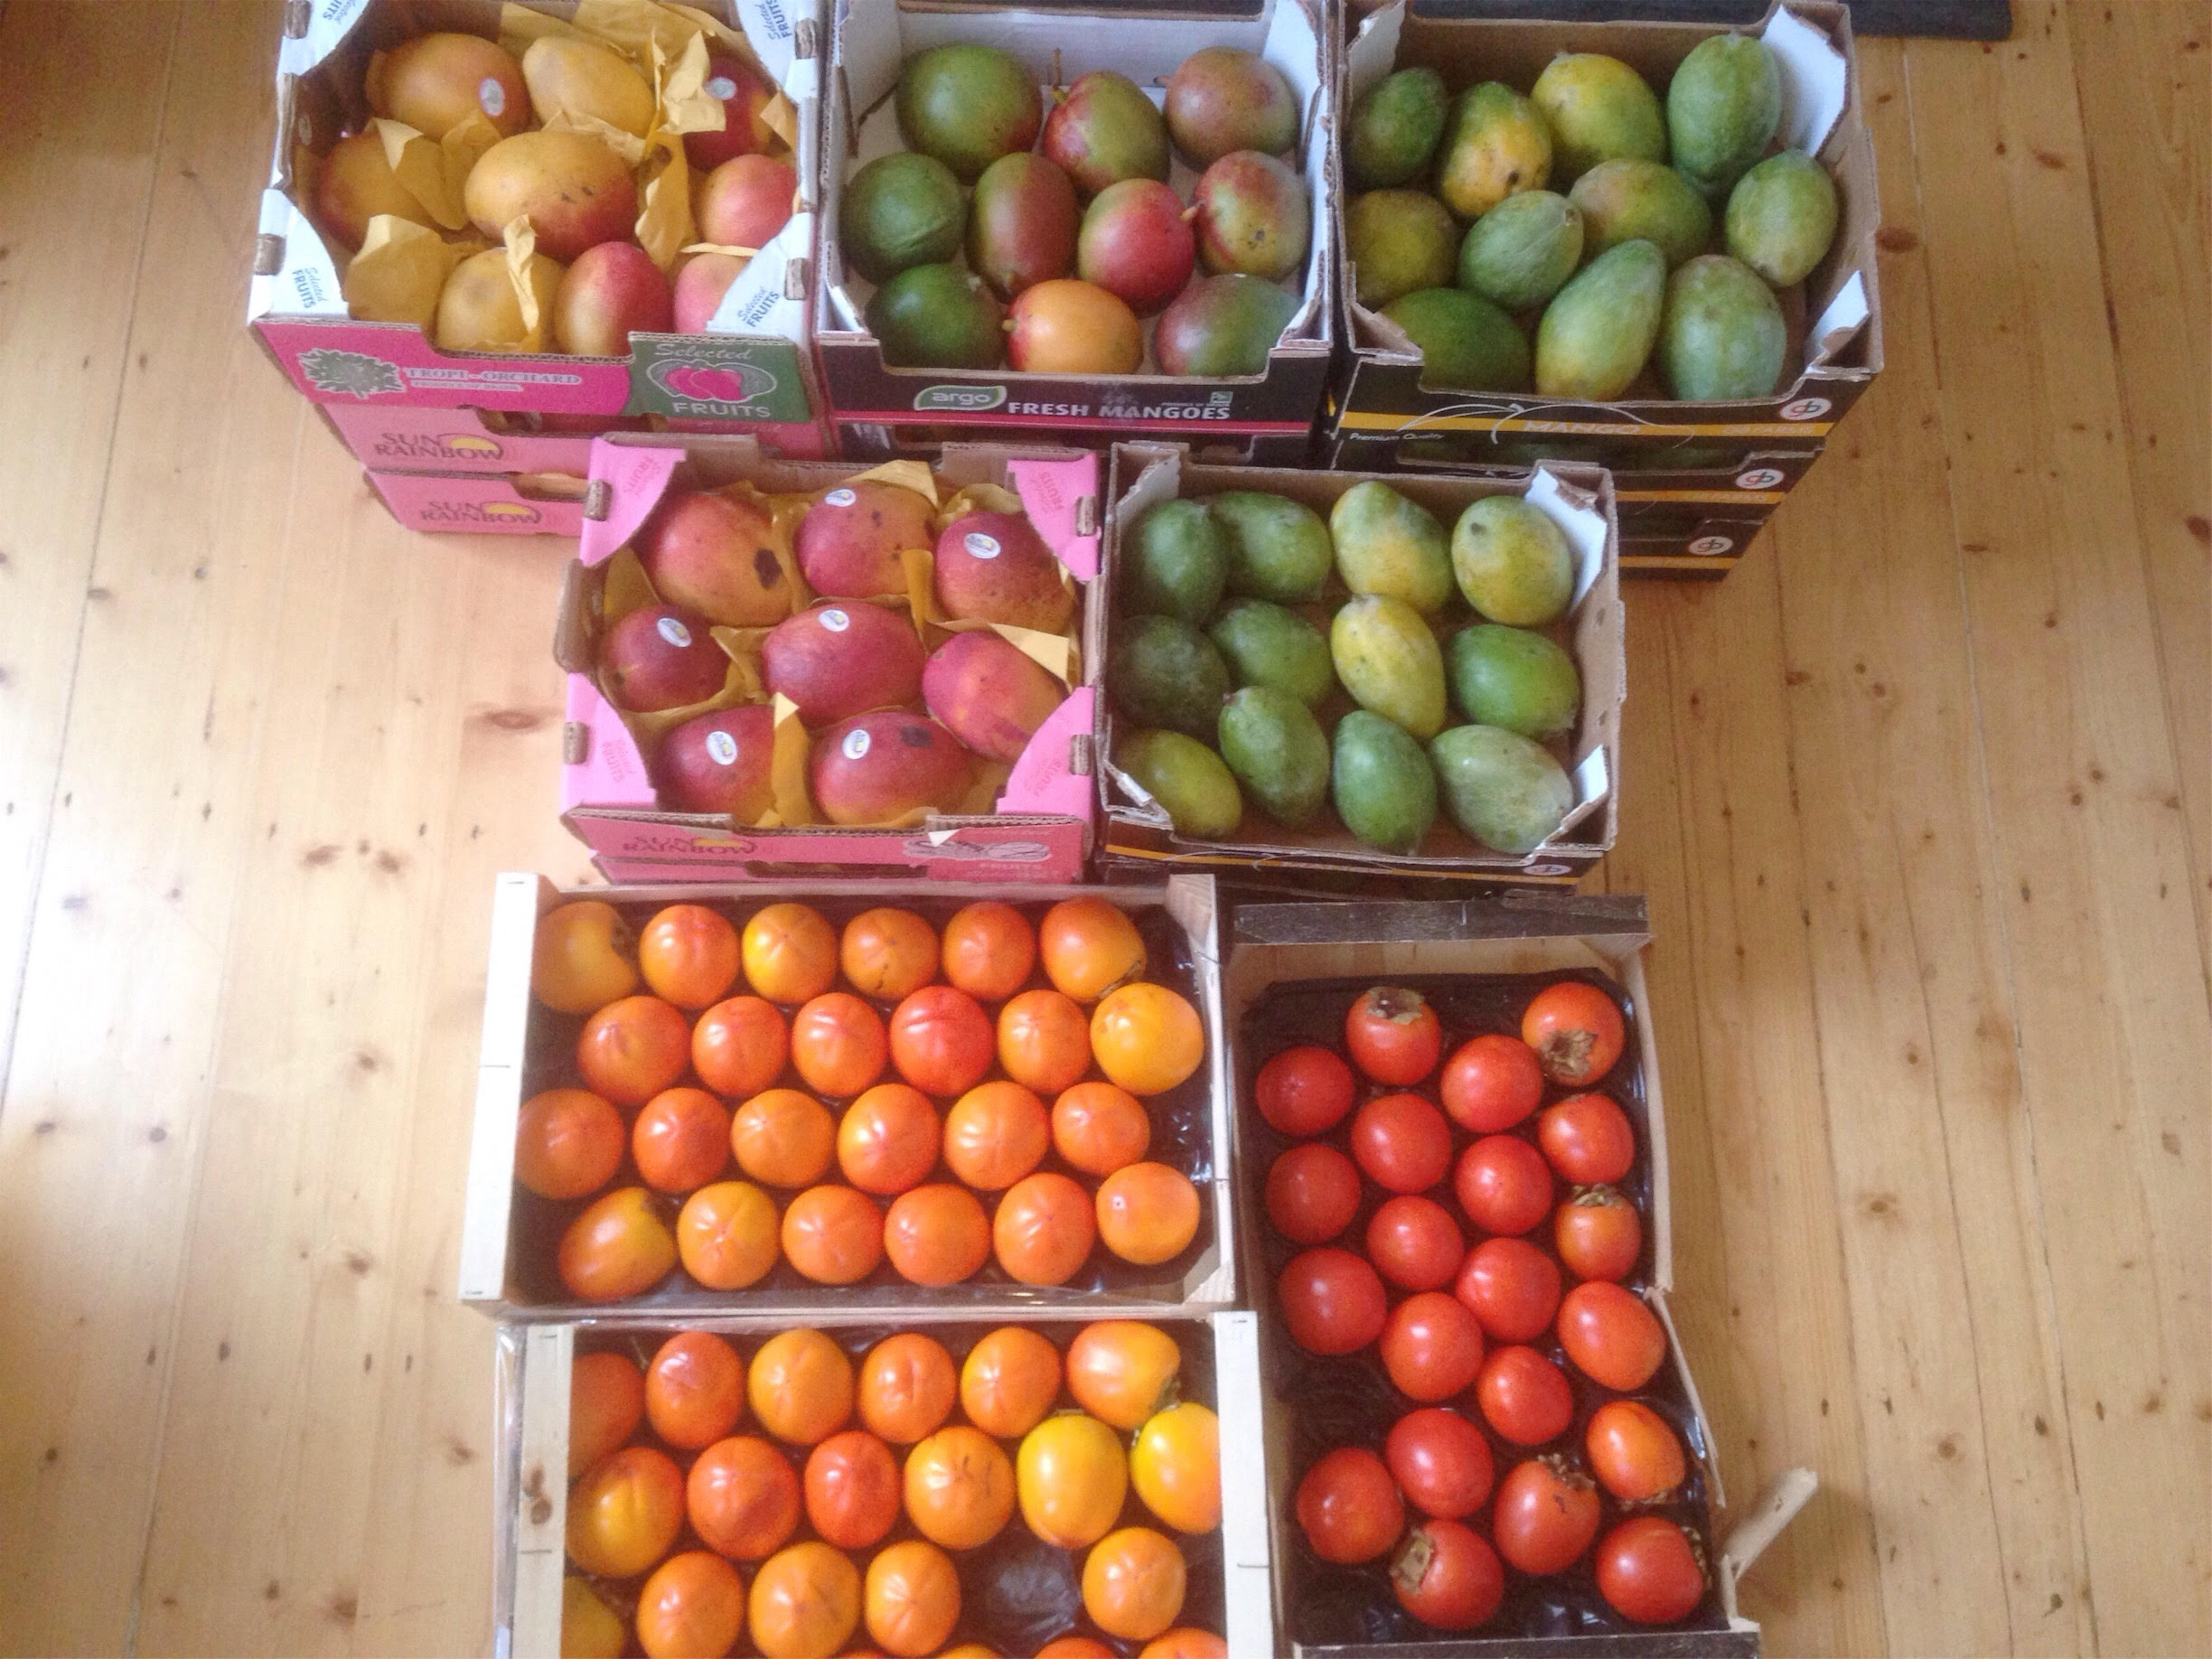 fruit_haul_25:17.jpg